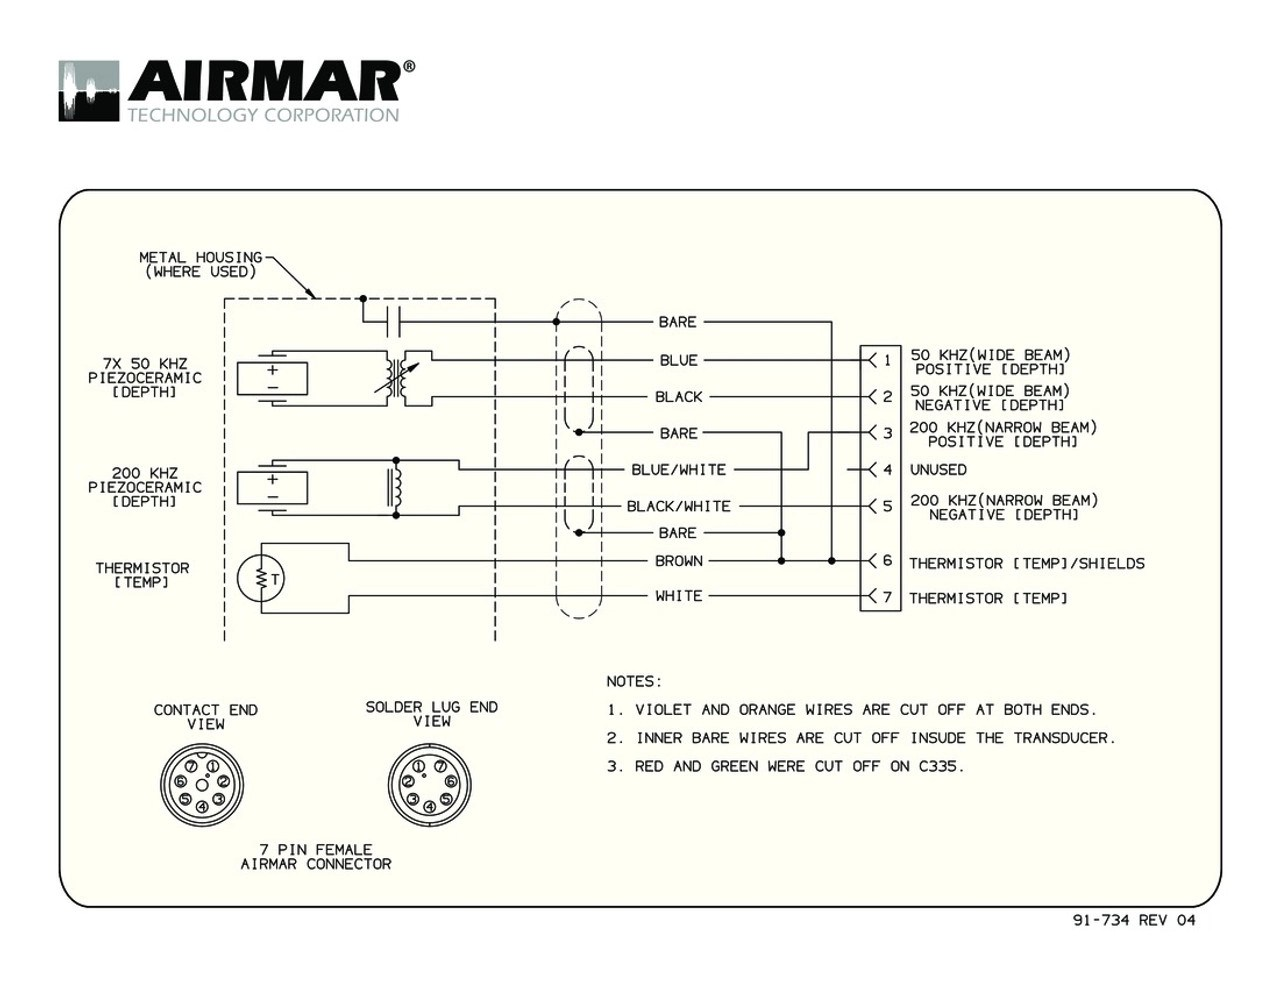 hight resolution of depth temperature 1kw transducers with simrad 7 pin connector airmar wiring diagram